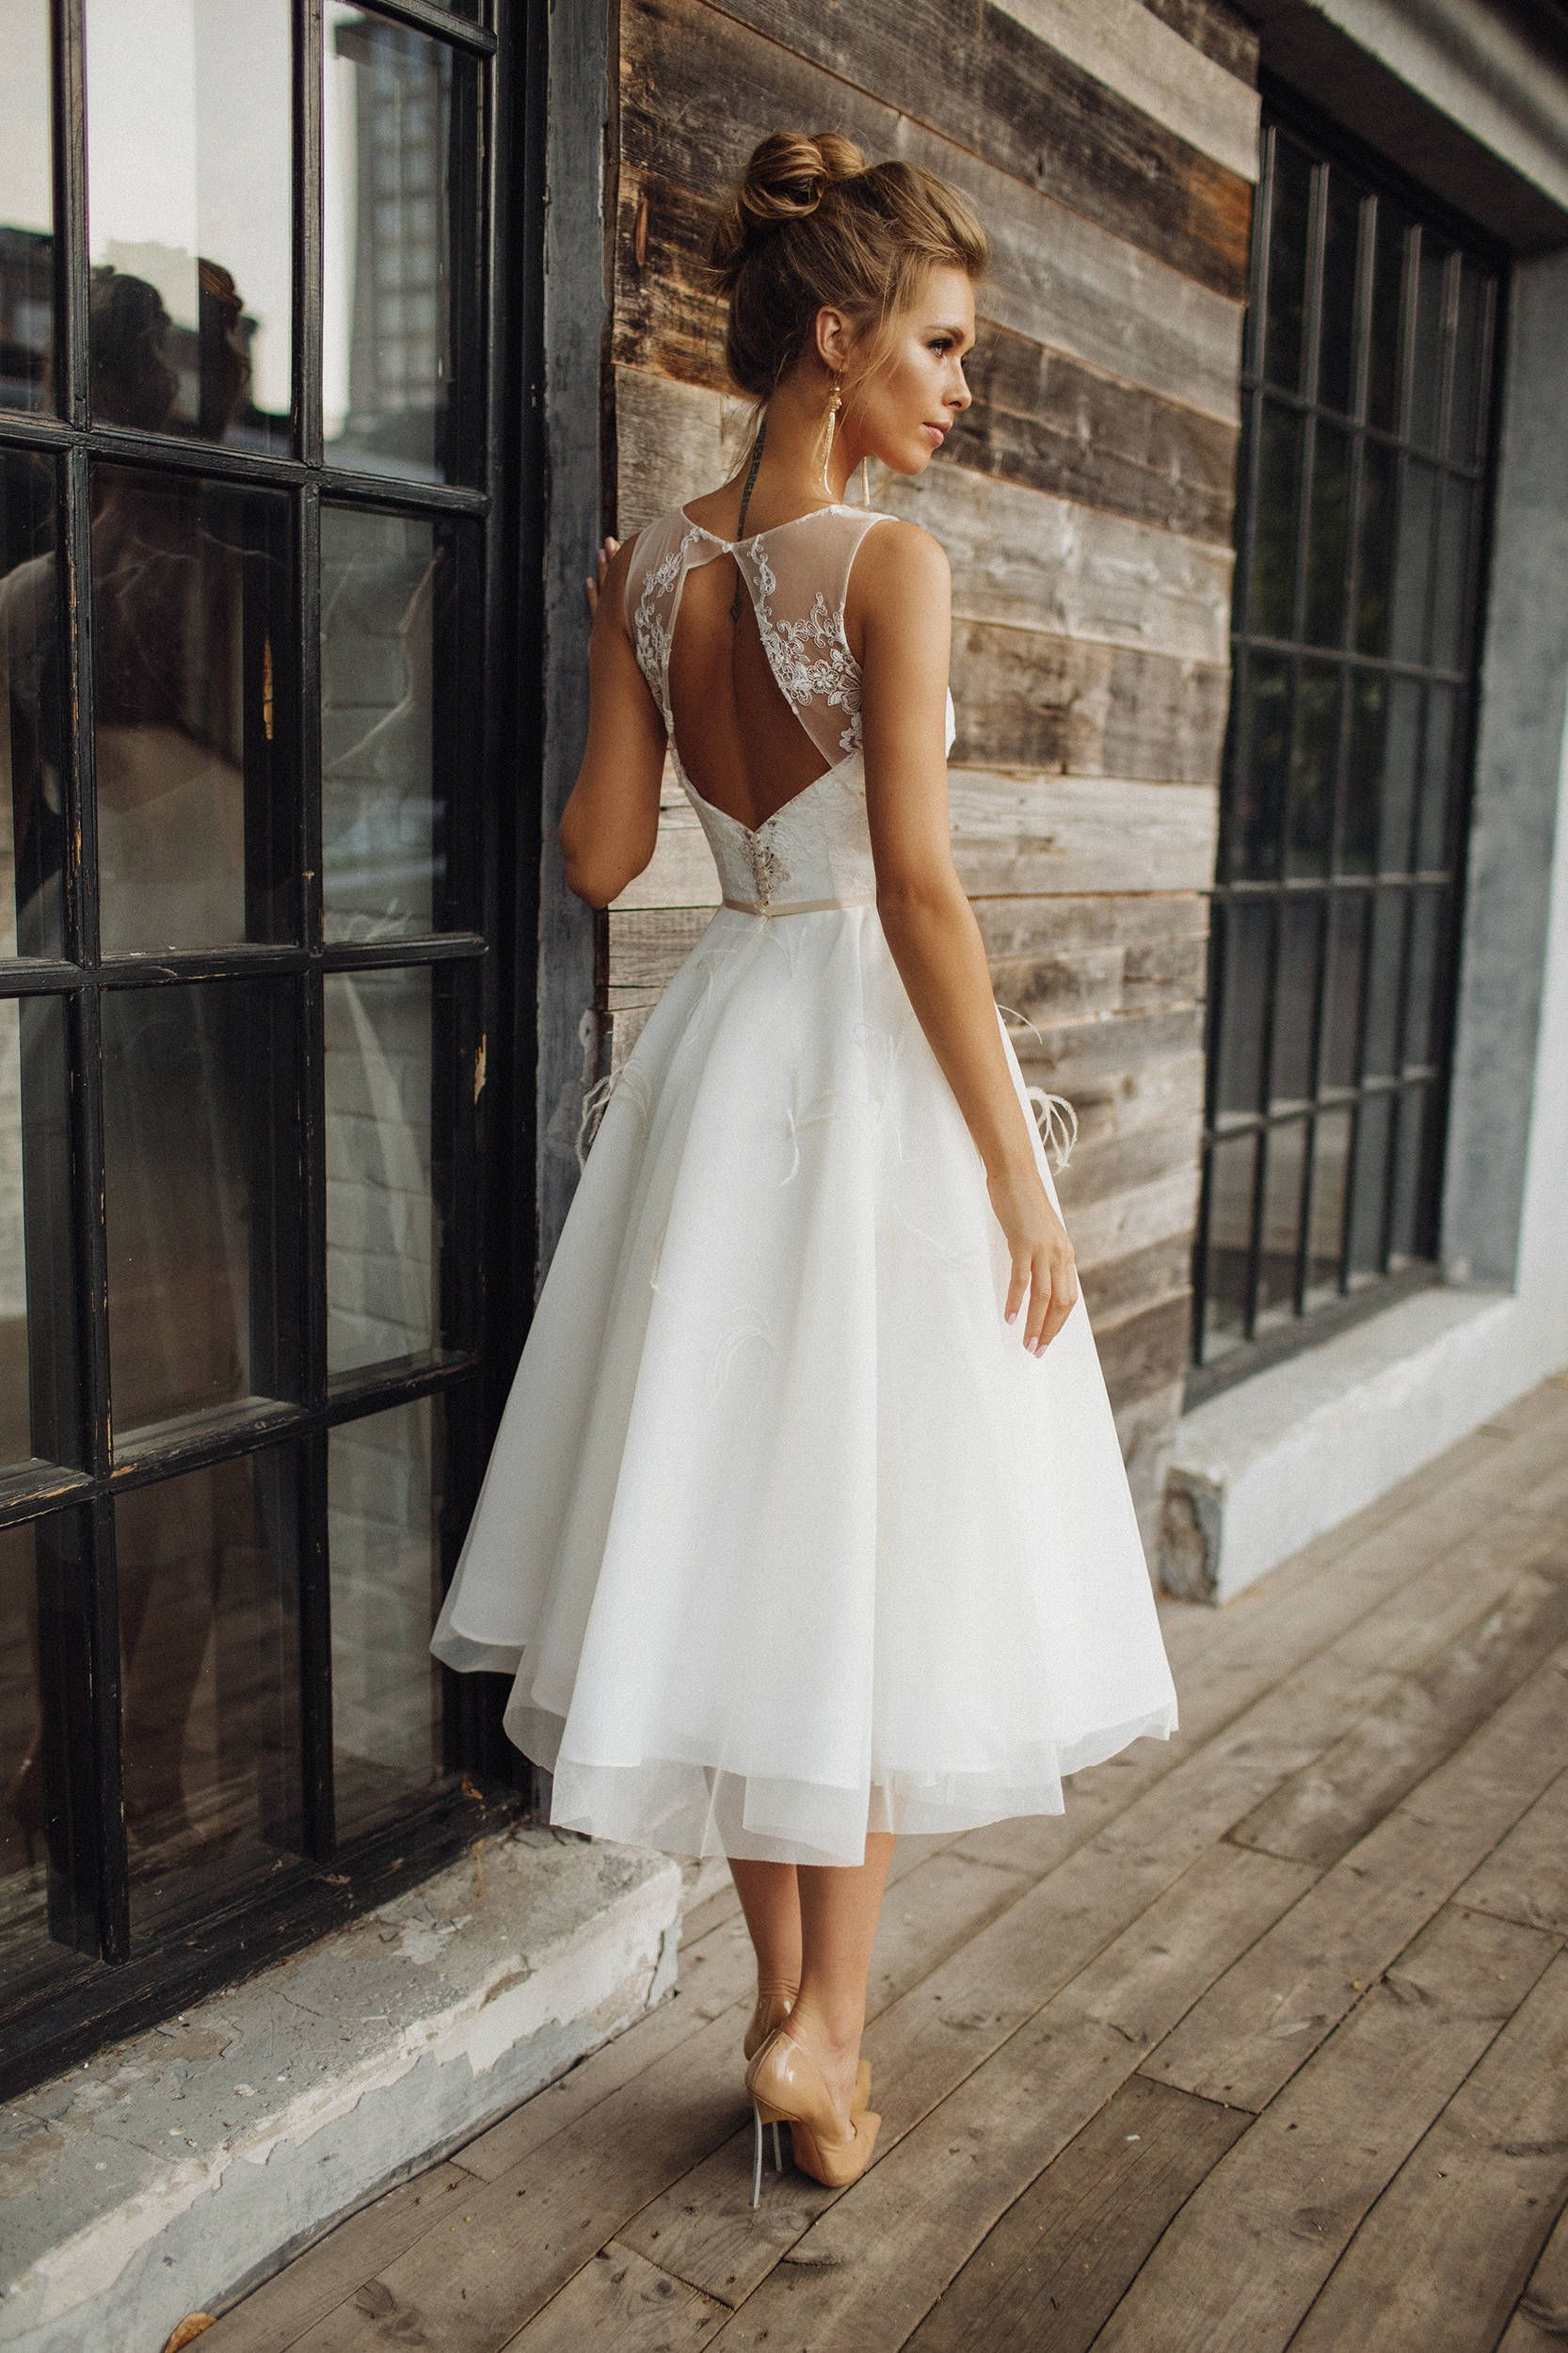 White short wedding dresses  Choosing a Wedding Color Theme  What You Must Consider  Best